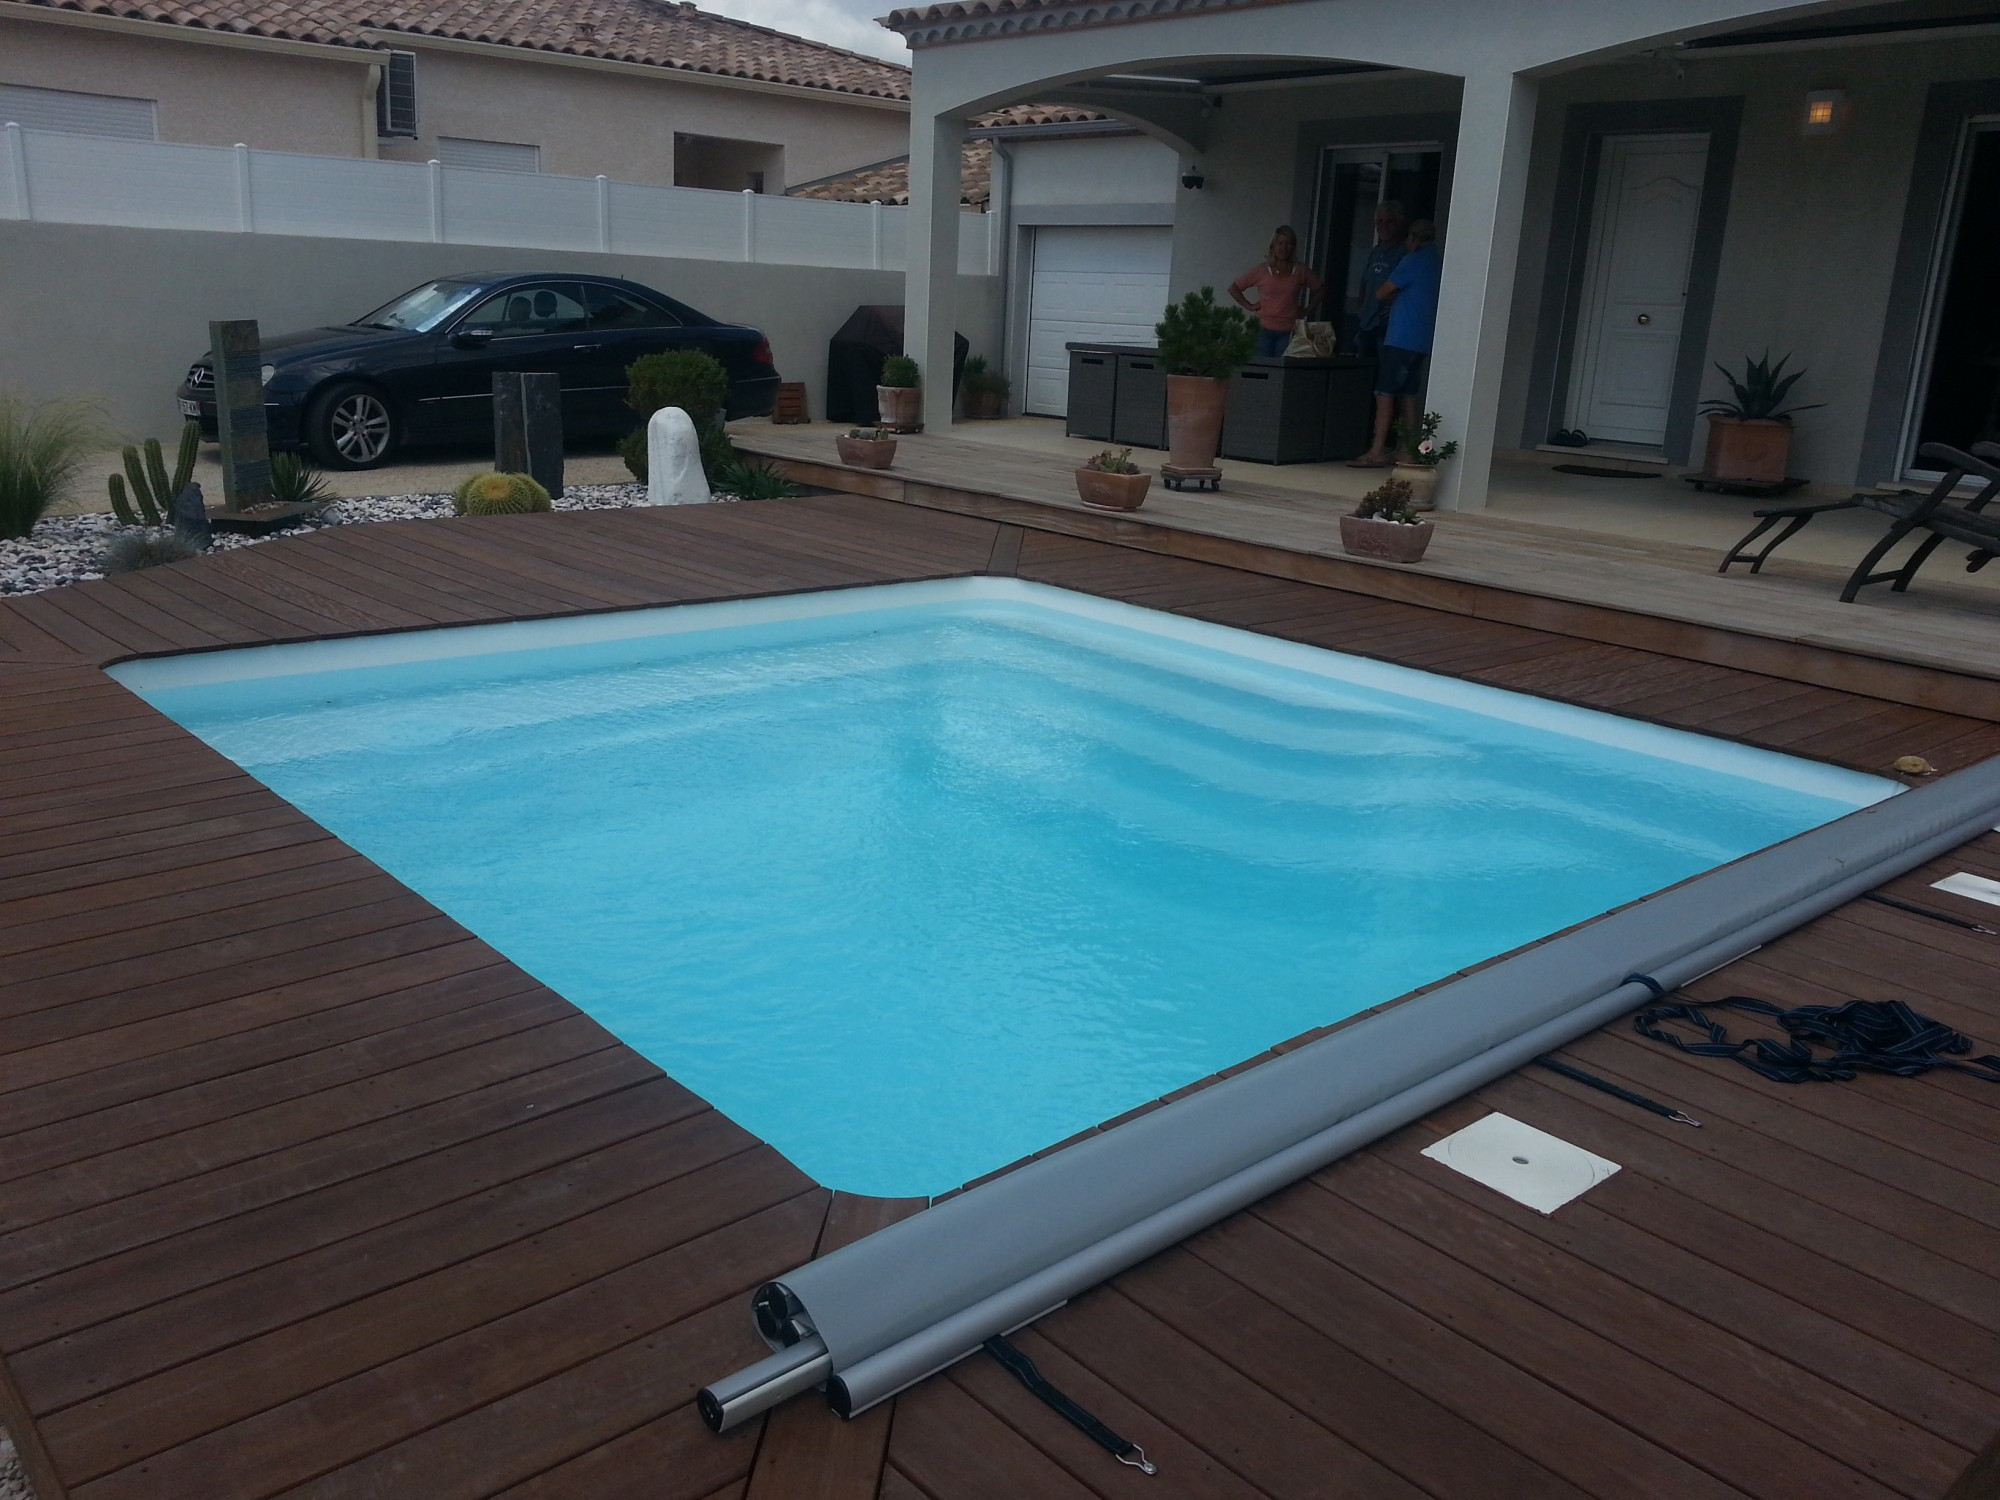 Amenager sa piscine wz13 jornalagora for Piscine coque polyester d exposition